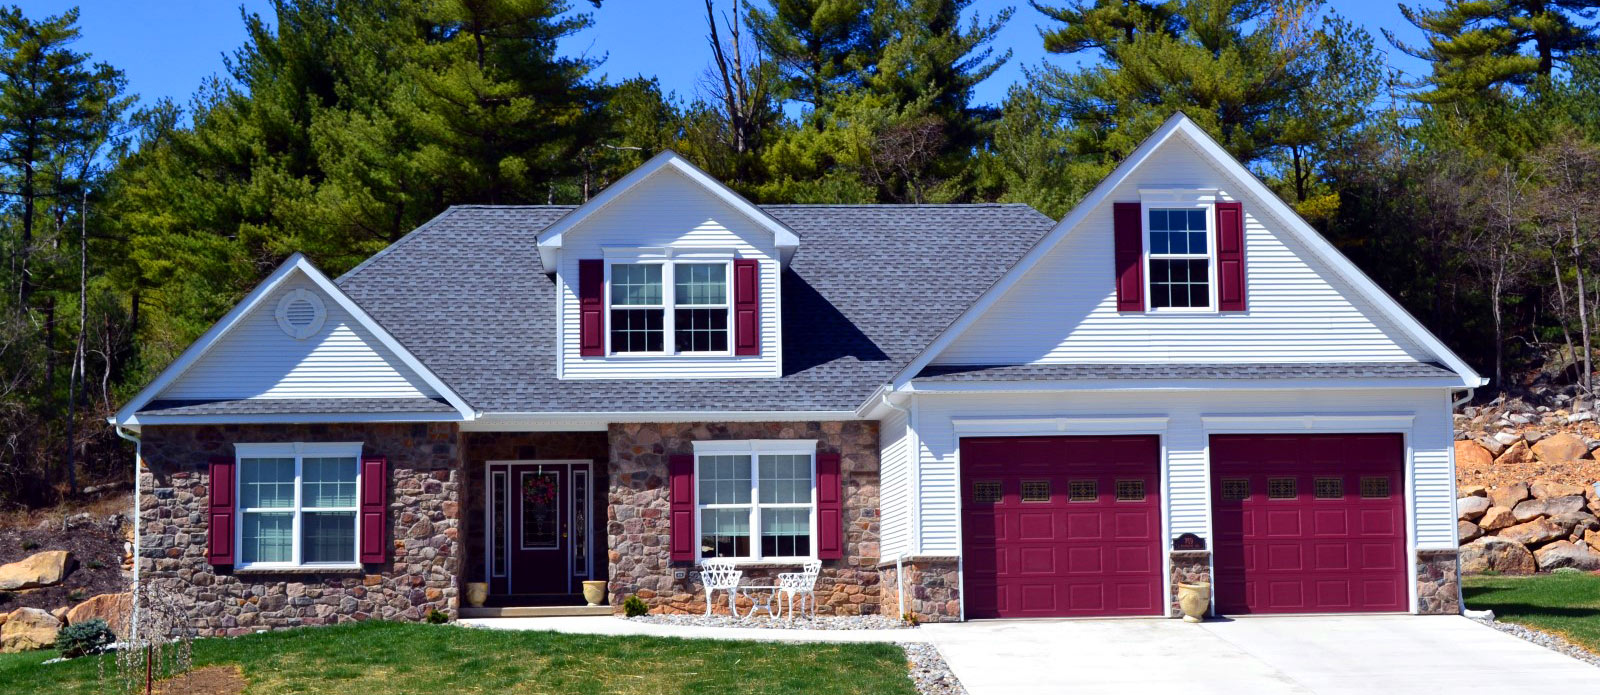 The Alden Home Model - Custom & Luxury New Construction by Future Homes